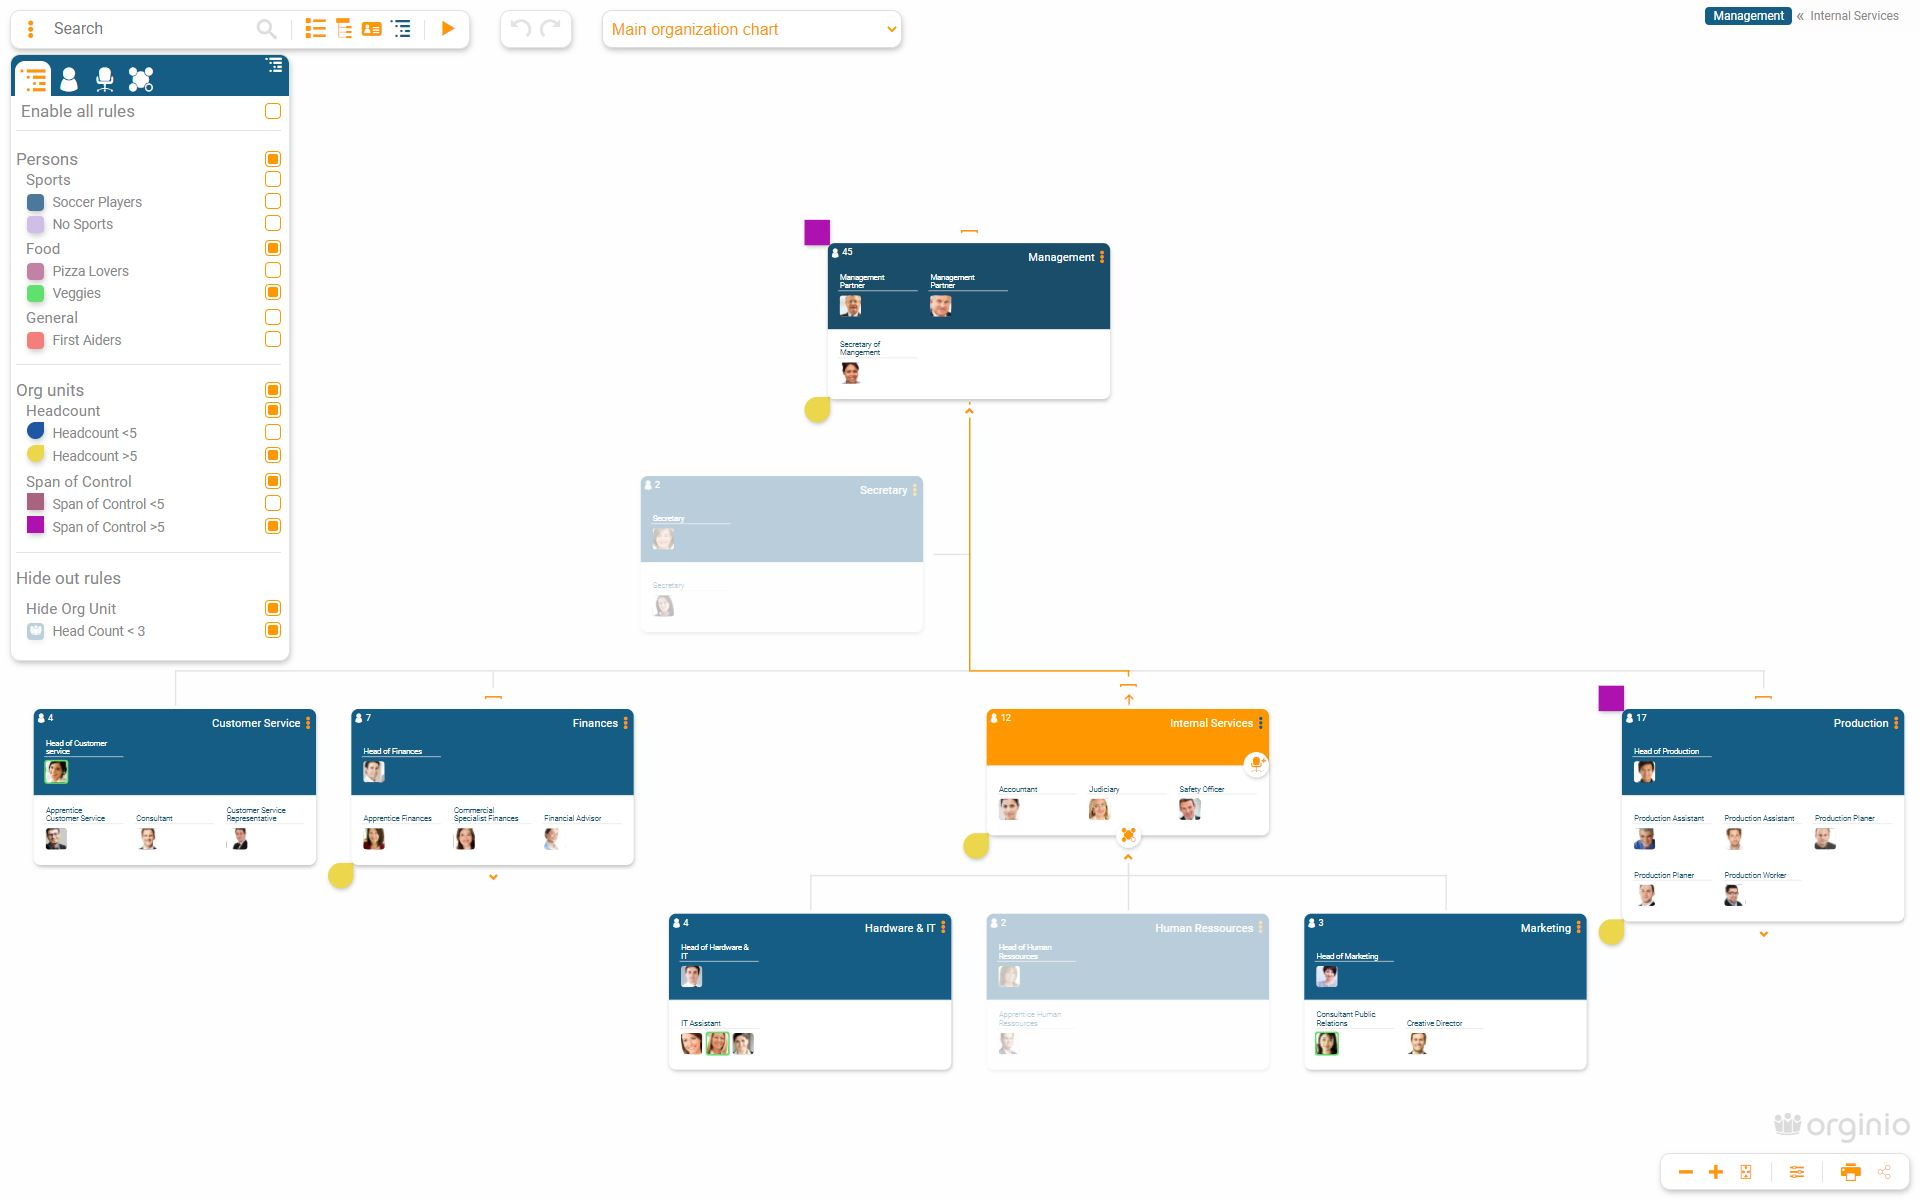 Set display rules to get a quick overview of particularly important aspects within the org chart.